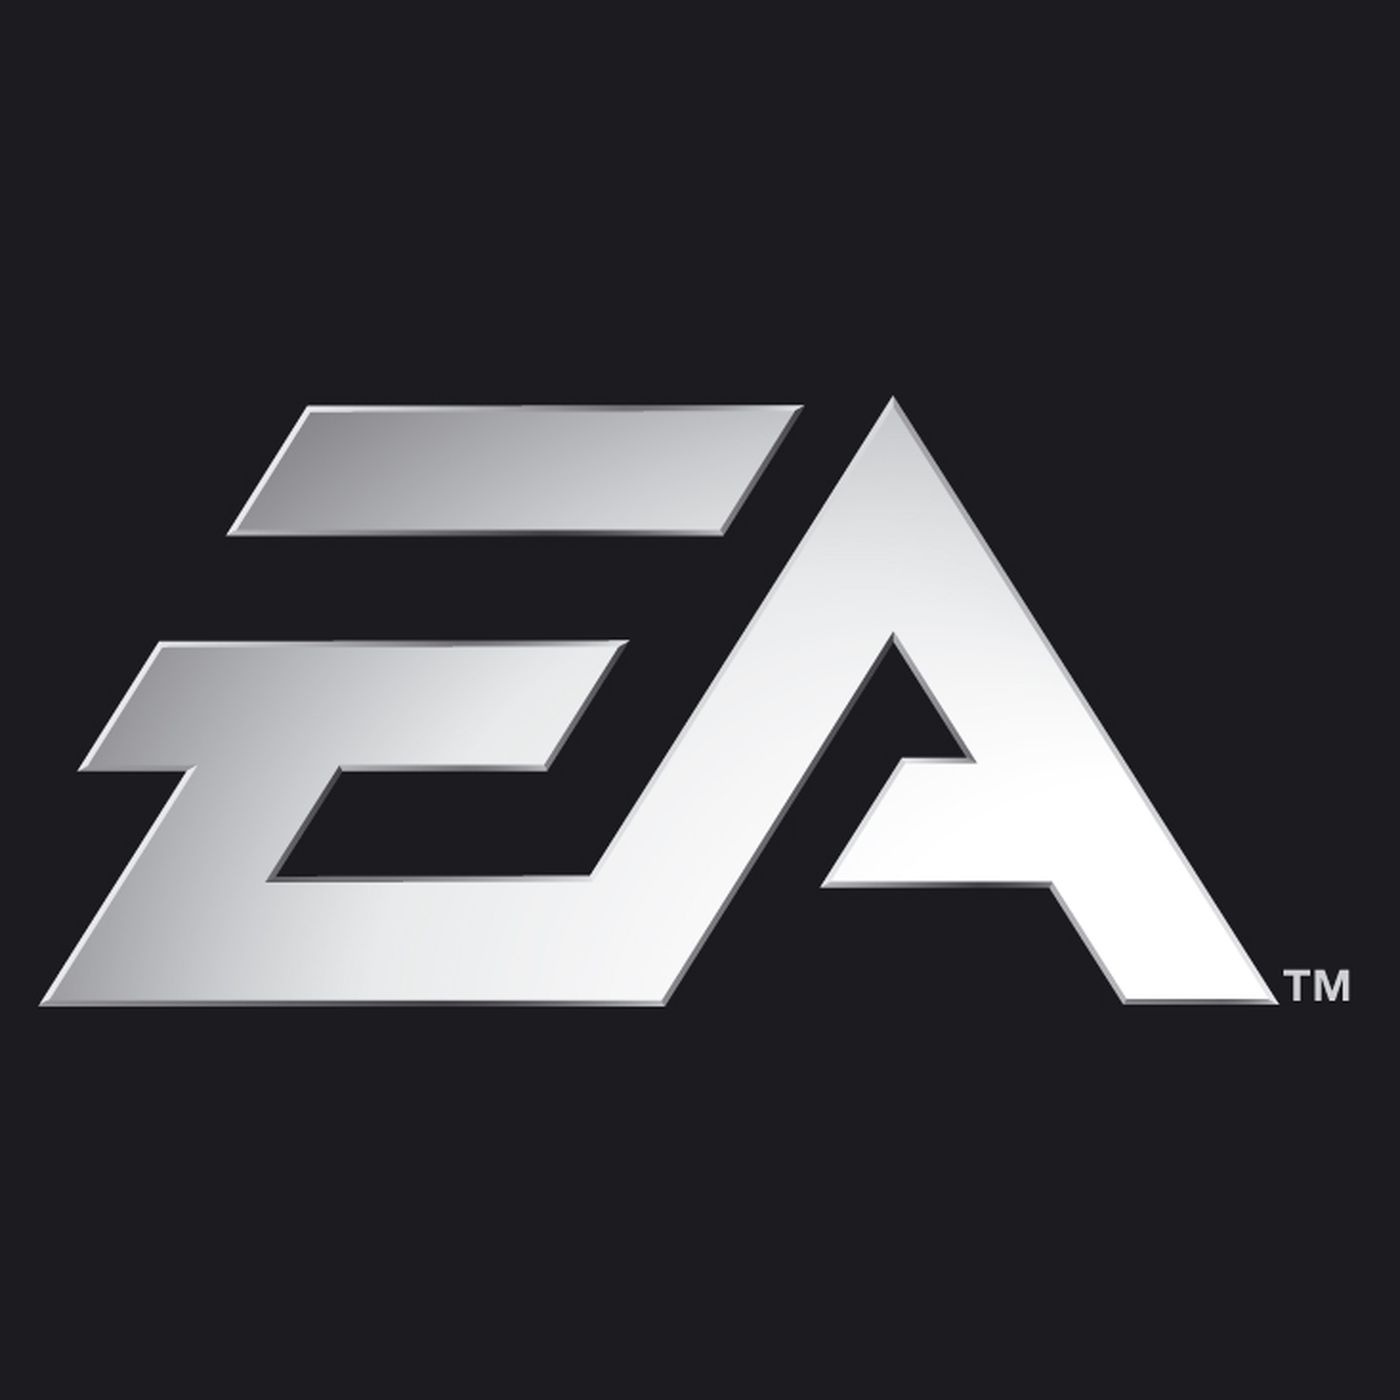 EA is shutting down the studio that created The Sims - The Verge